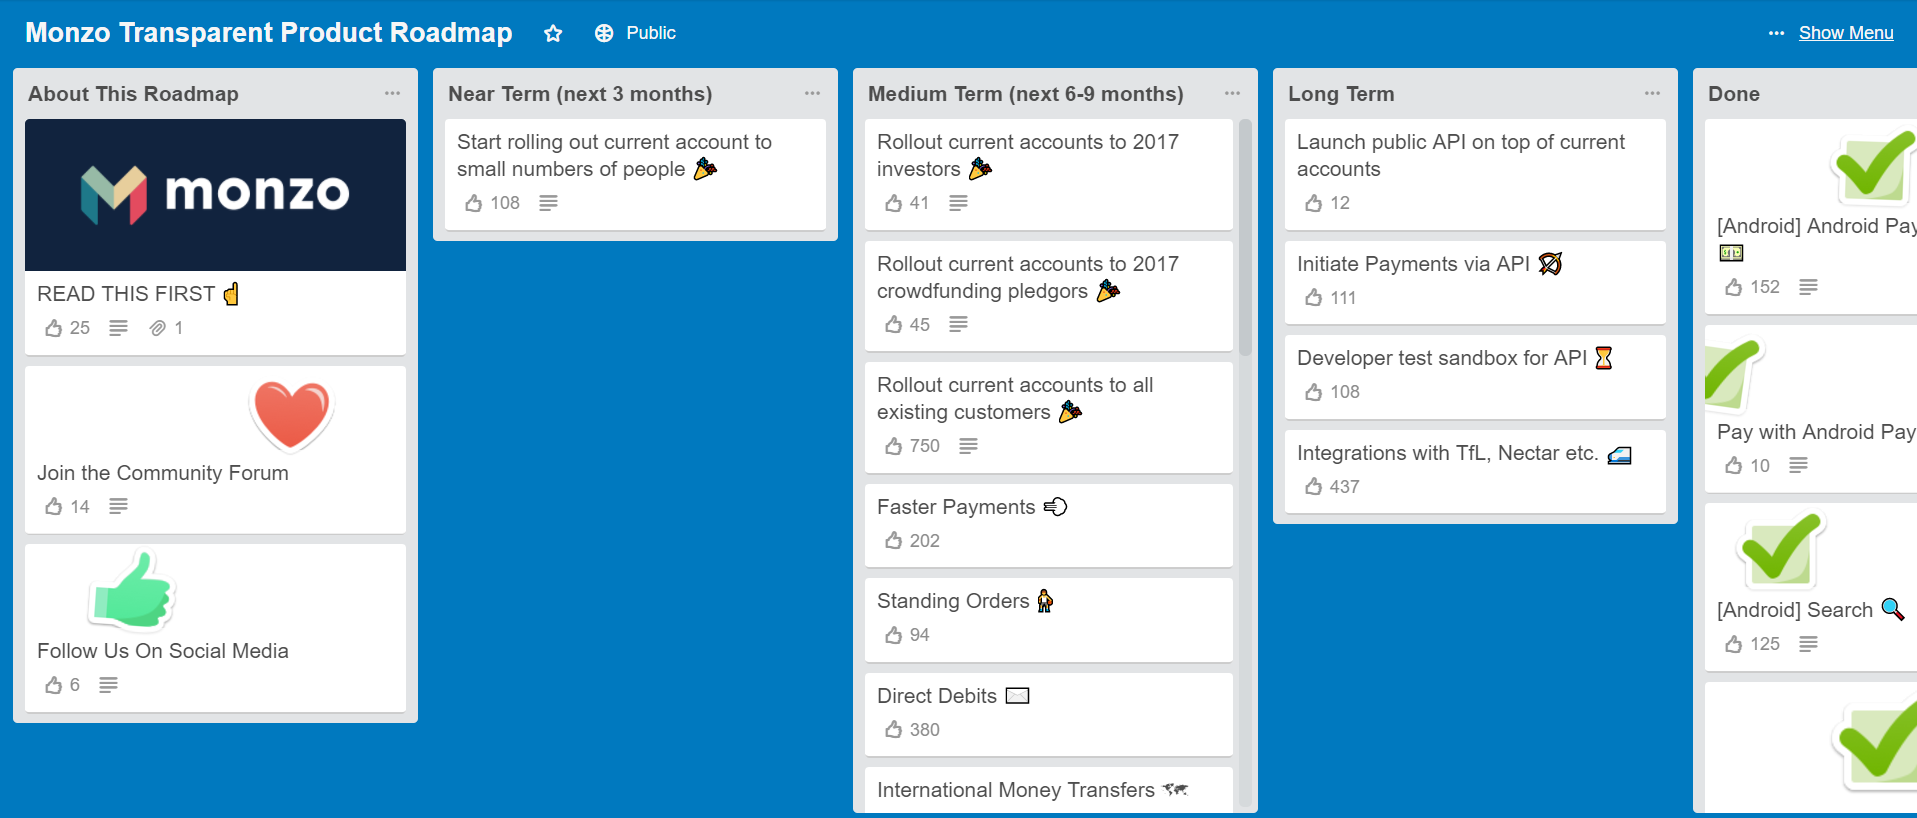 Trello board for customers to vote